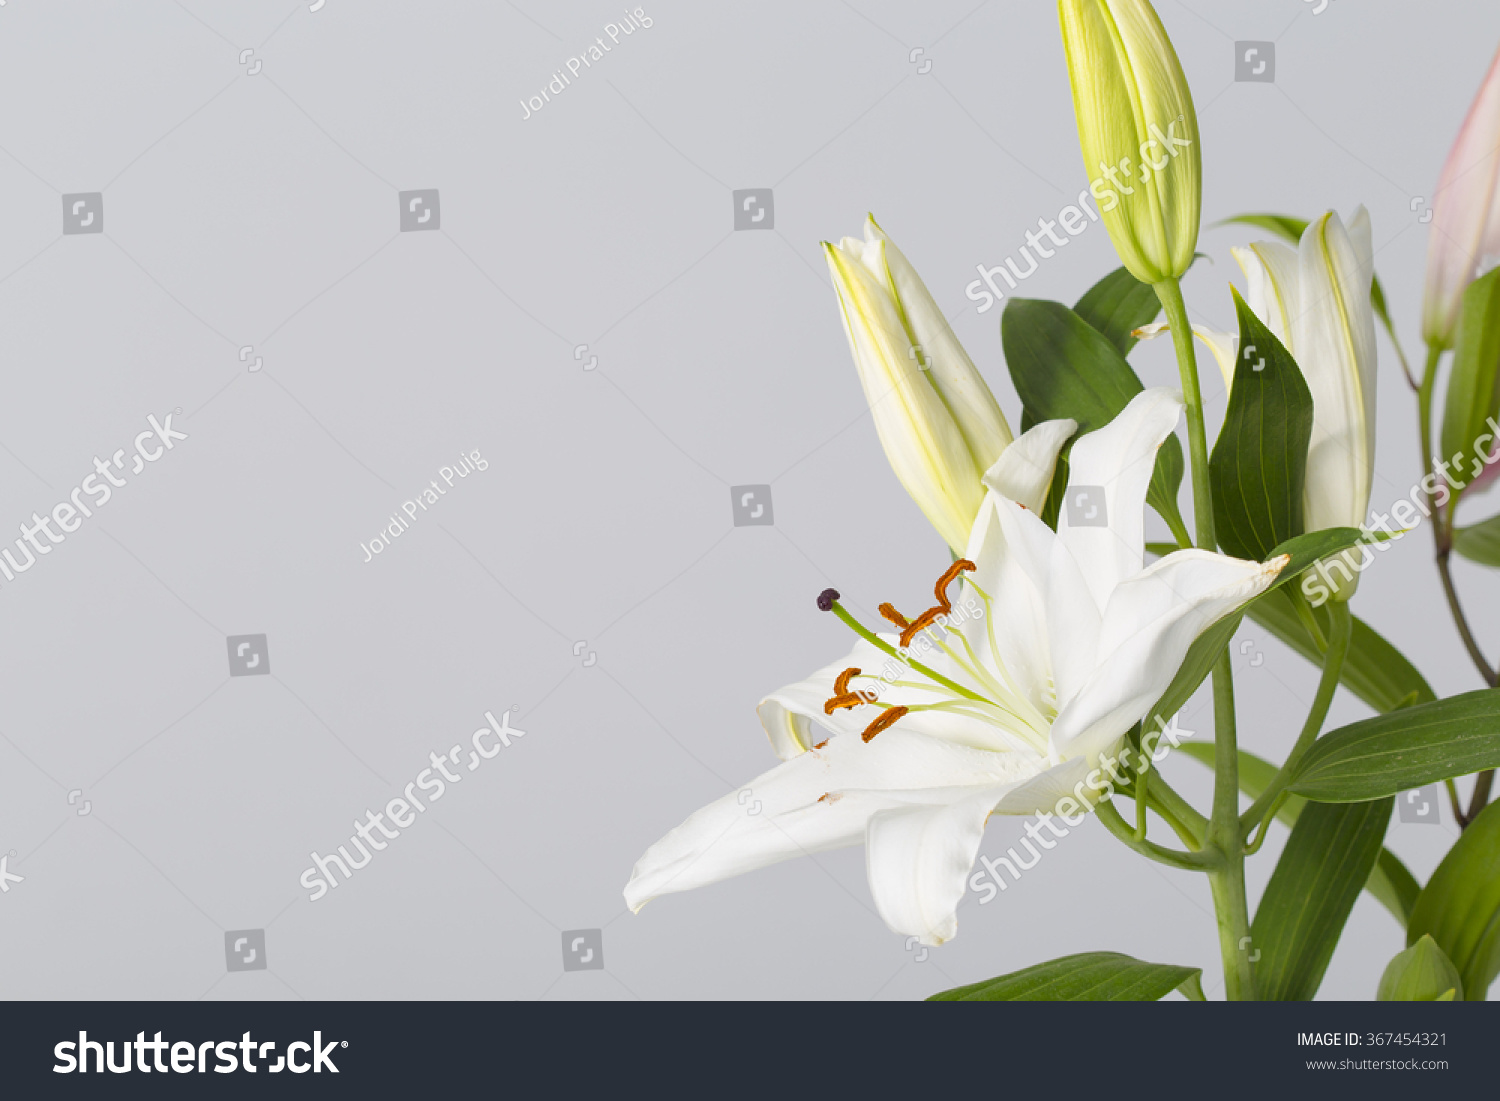 Lily Flower Bloom Pistils White Petals Stock Photo Royalty Free